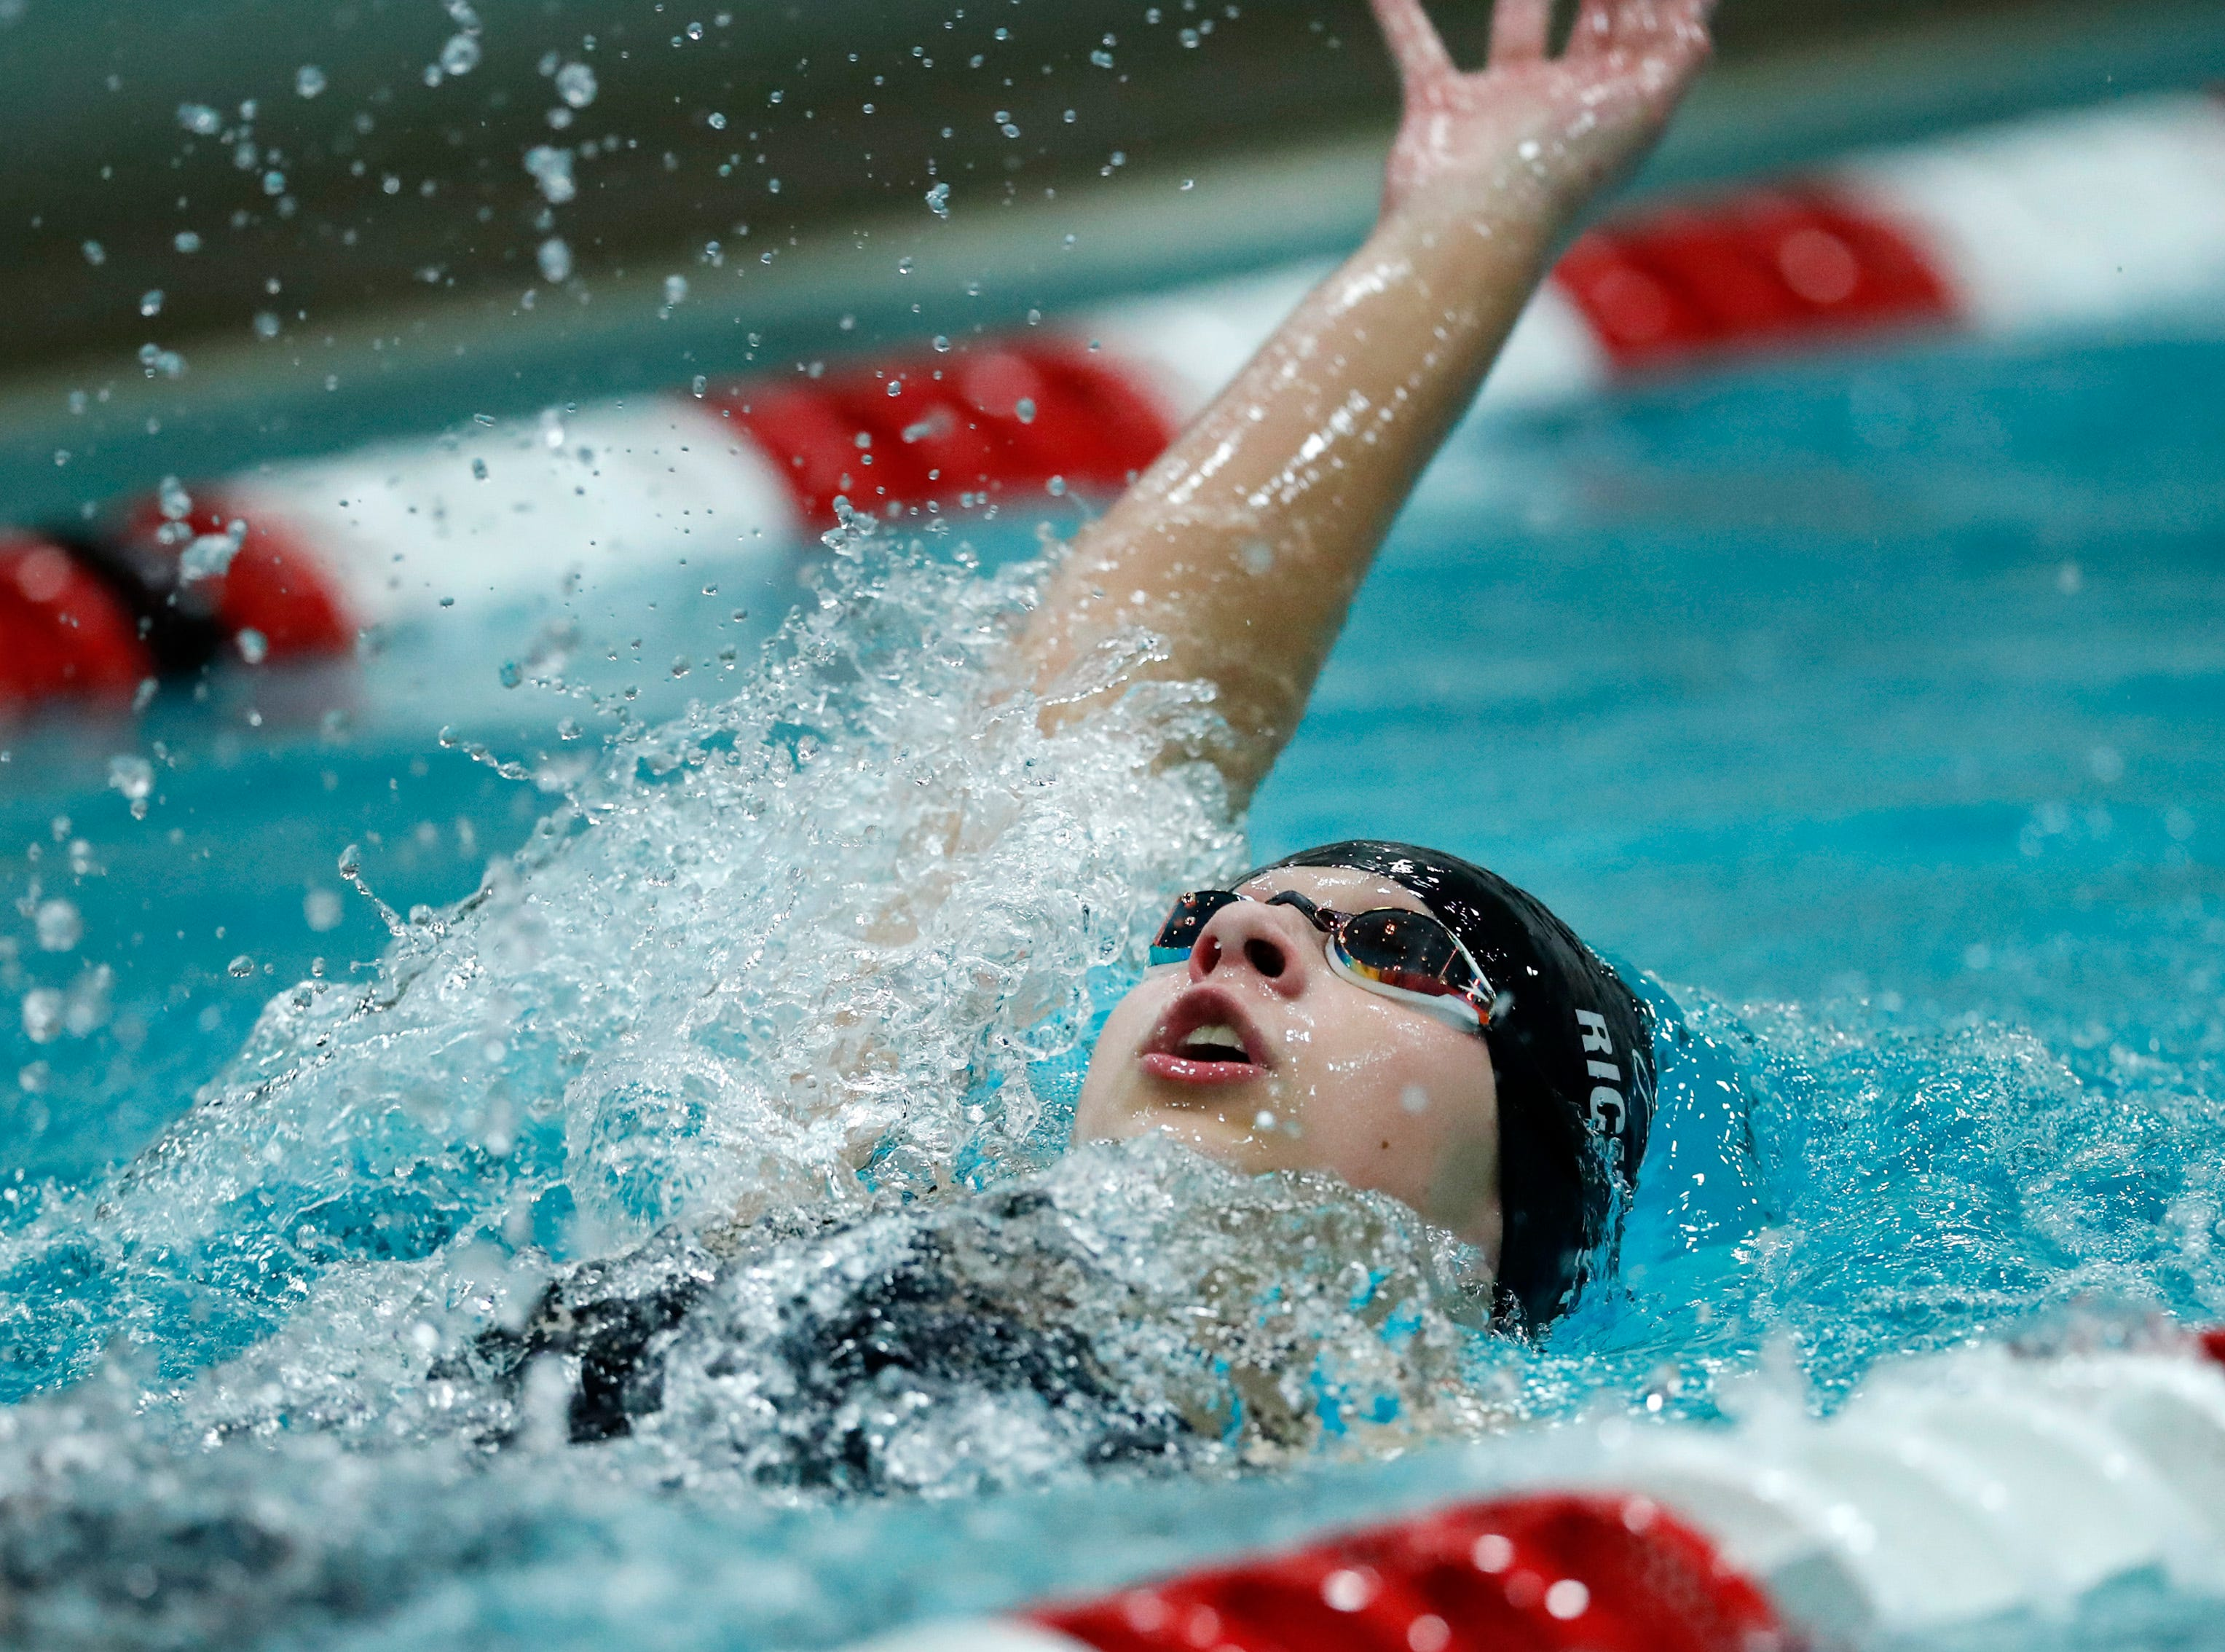 Wausau East's Olivia Richetto races in the 200 yard individual medley during the WIAA Division 2 State Swimming and Diving meet Friday, Nov. 9, 2018, at the UW Natatorium in Madison, Wis.